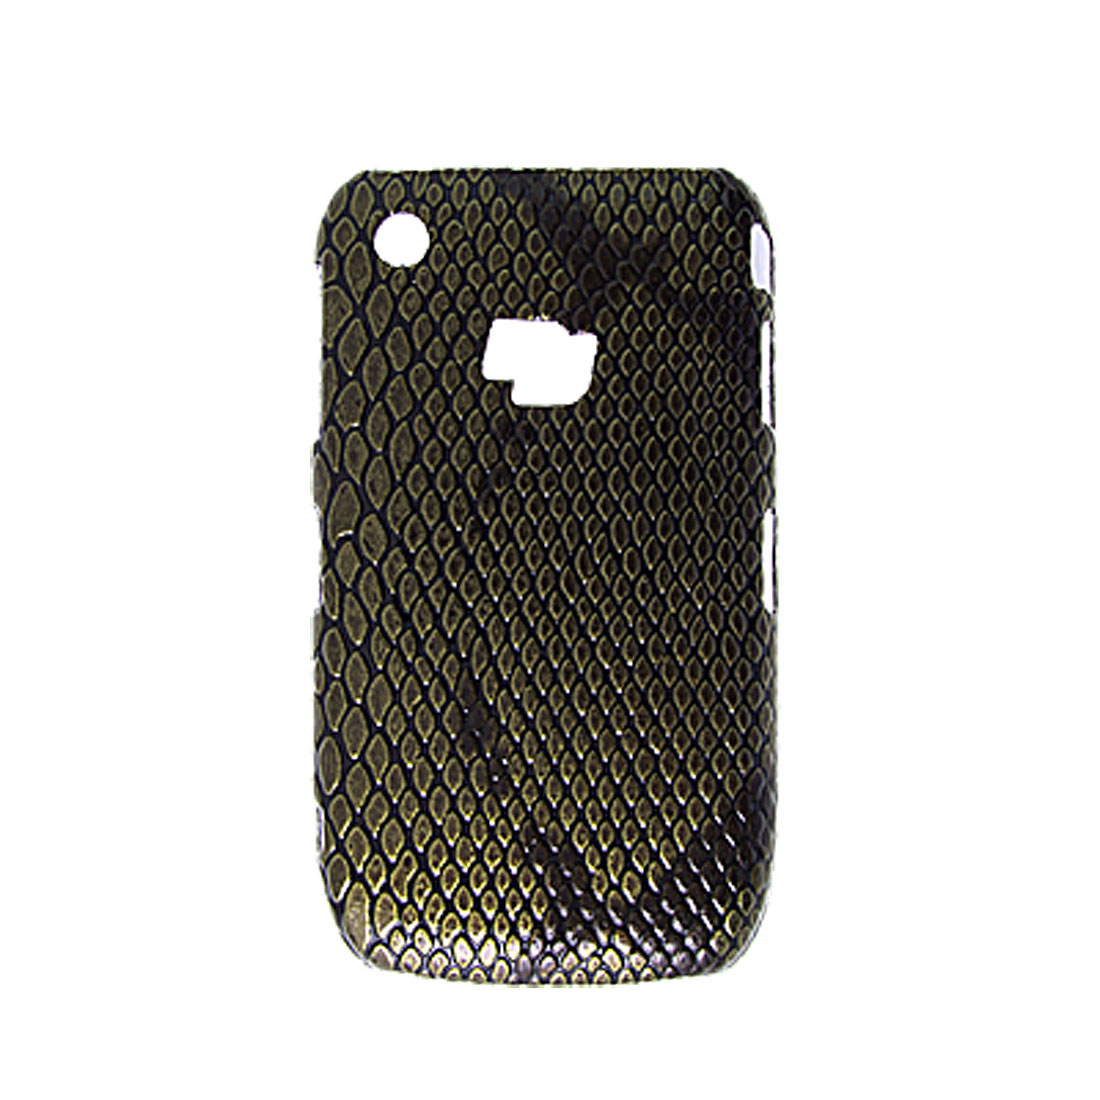 Snake Print Hard Plastic Bronze Color Back Case Cover for Blackberry 8520